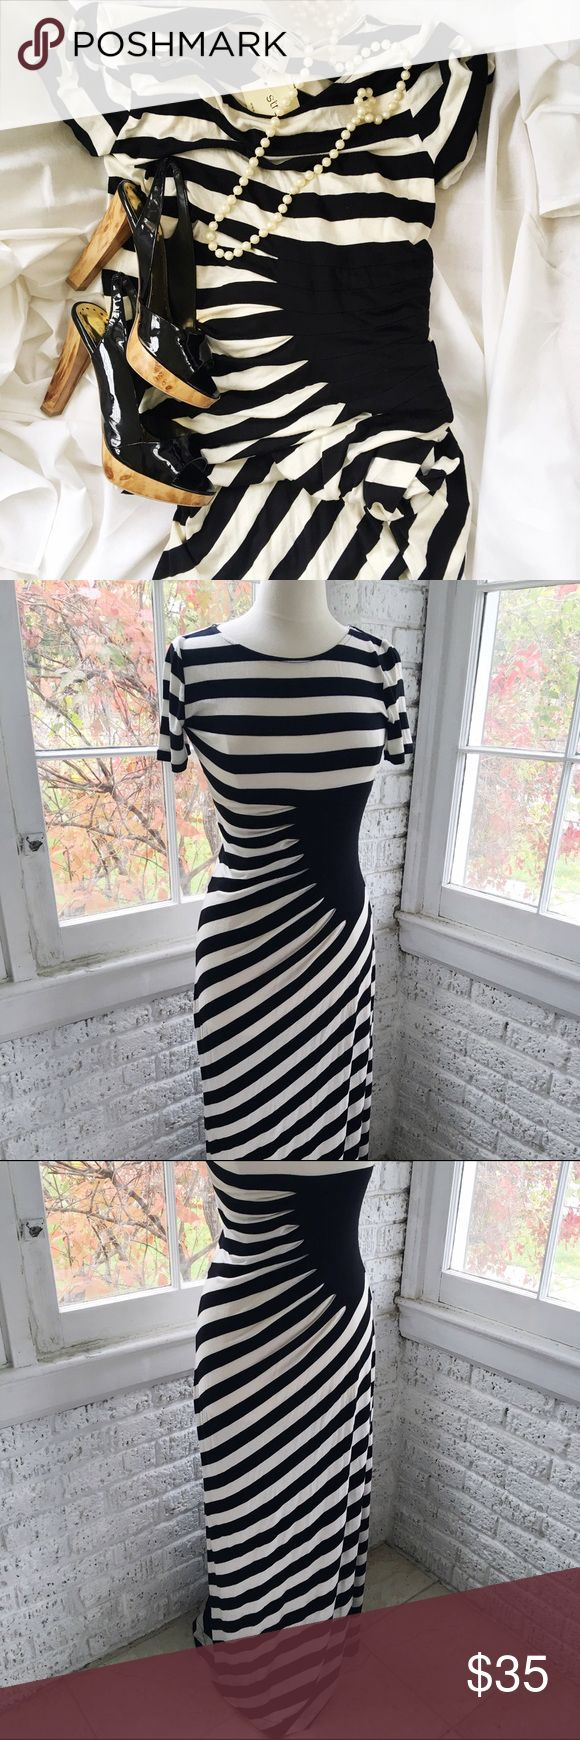 Eci Black and White short sleeve maxi dress NWT Great style and Super flattering black and white striped floor length maxi dress. Size Medium. For reference mannequin has a 38 inch bust. 96% rayon 4% spandex for that jersey fabric feel. ECI Dresses Maxi